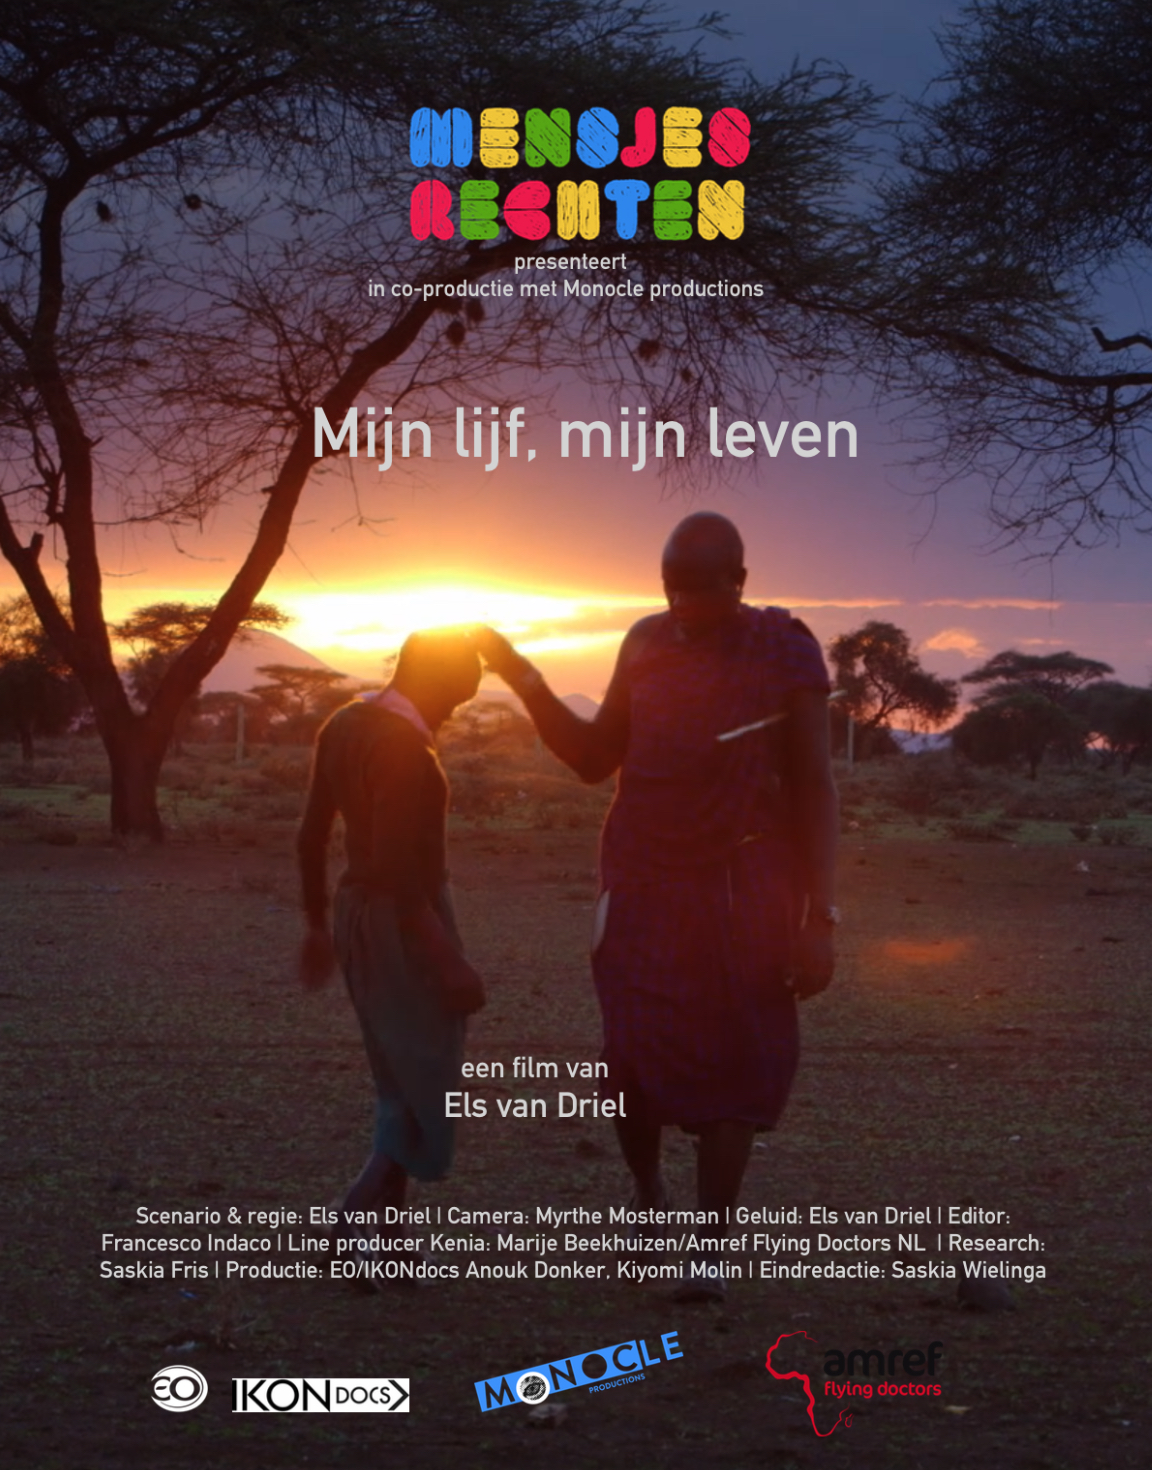 My Body, My Life    According to the tradition of the Masai tribe in Kenya, Sabina has to be circumcised when she turns 12 years-old. This practice still prevails...  Read More